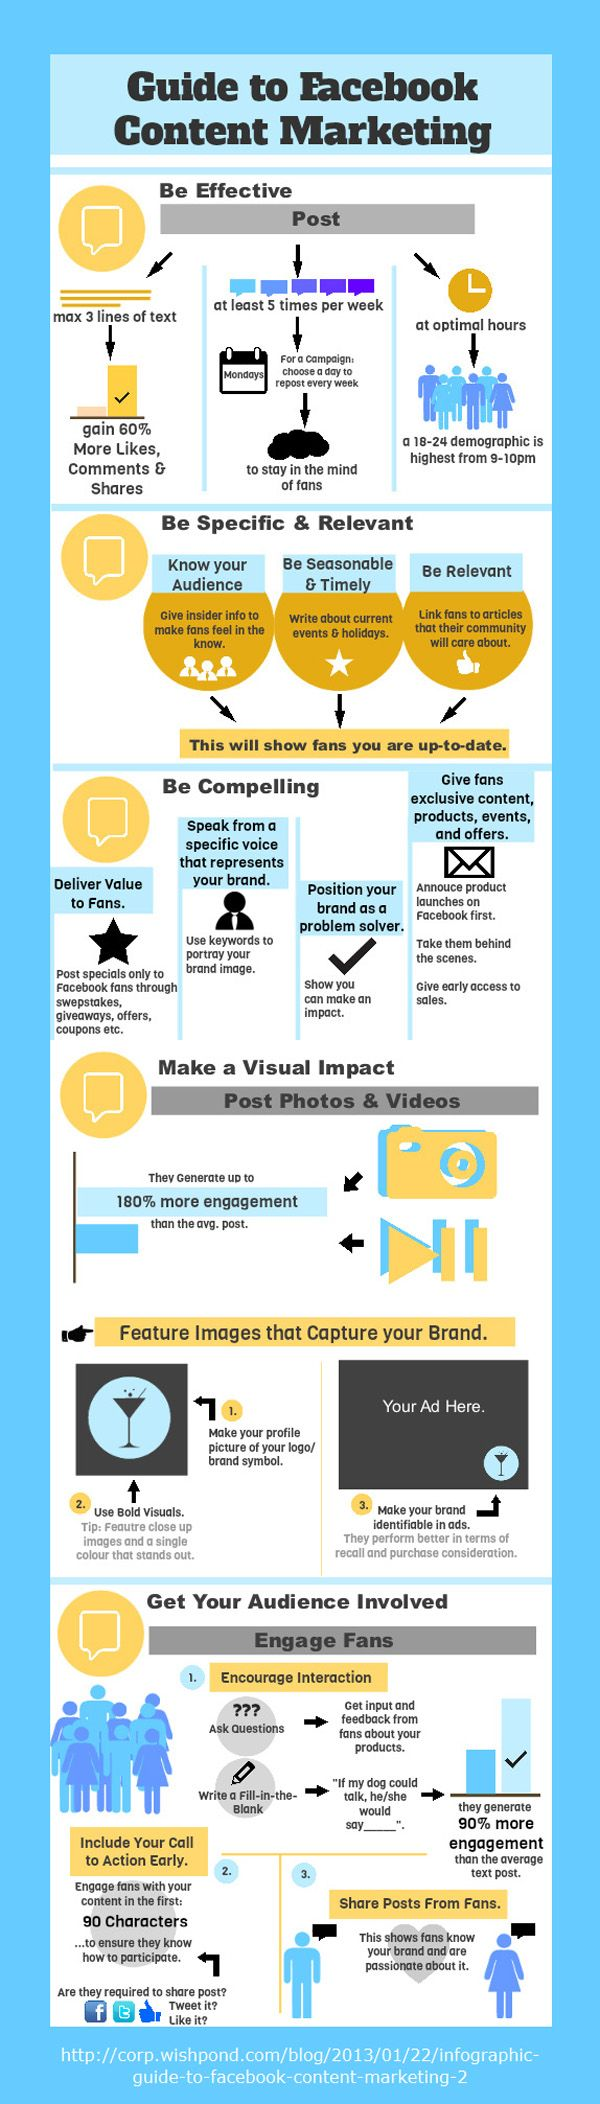 Facebook Content Marketing Tips-Infographic